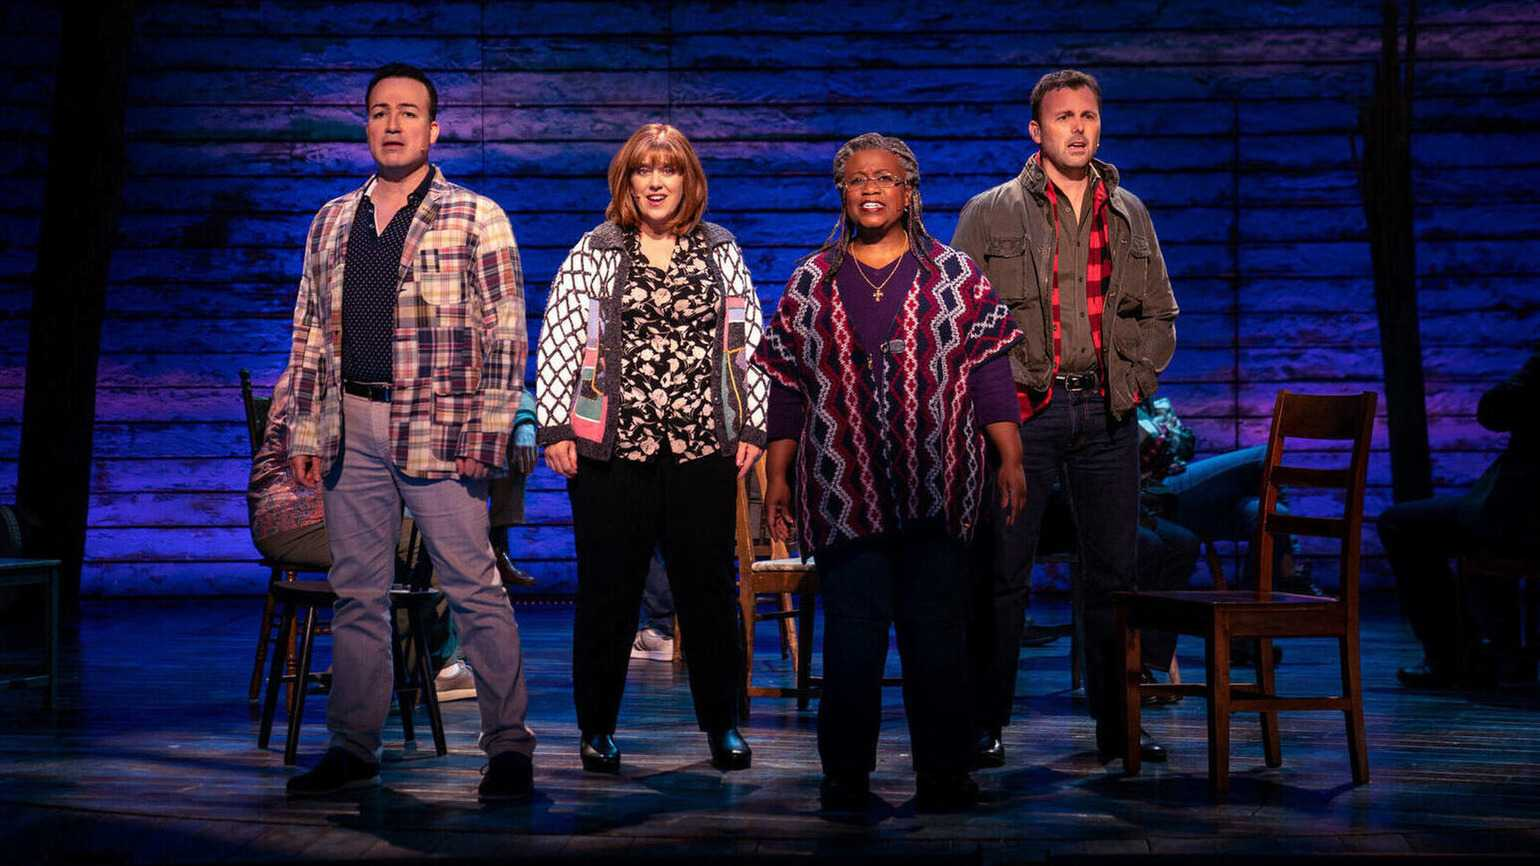 """Caesar Samayoa, Sharon Wheatley, Q. Smith and Tony LePage in """"Come From Away,"""" on Apple TV+."""